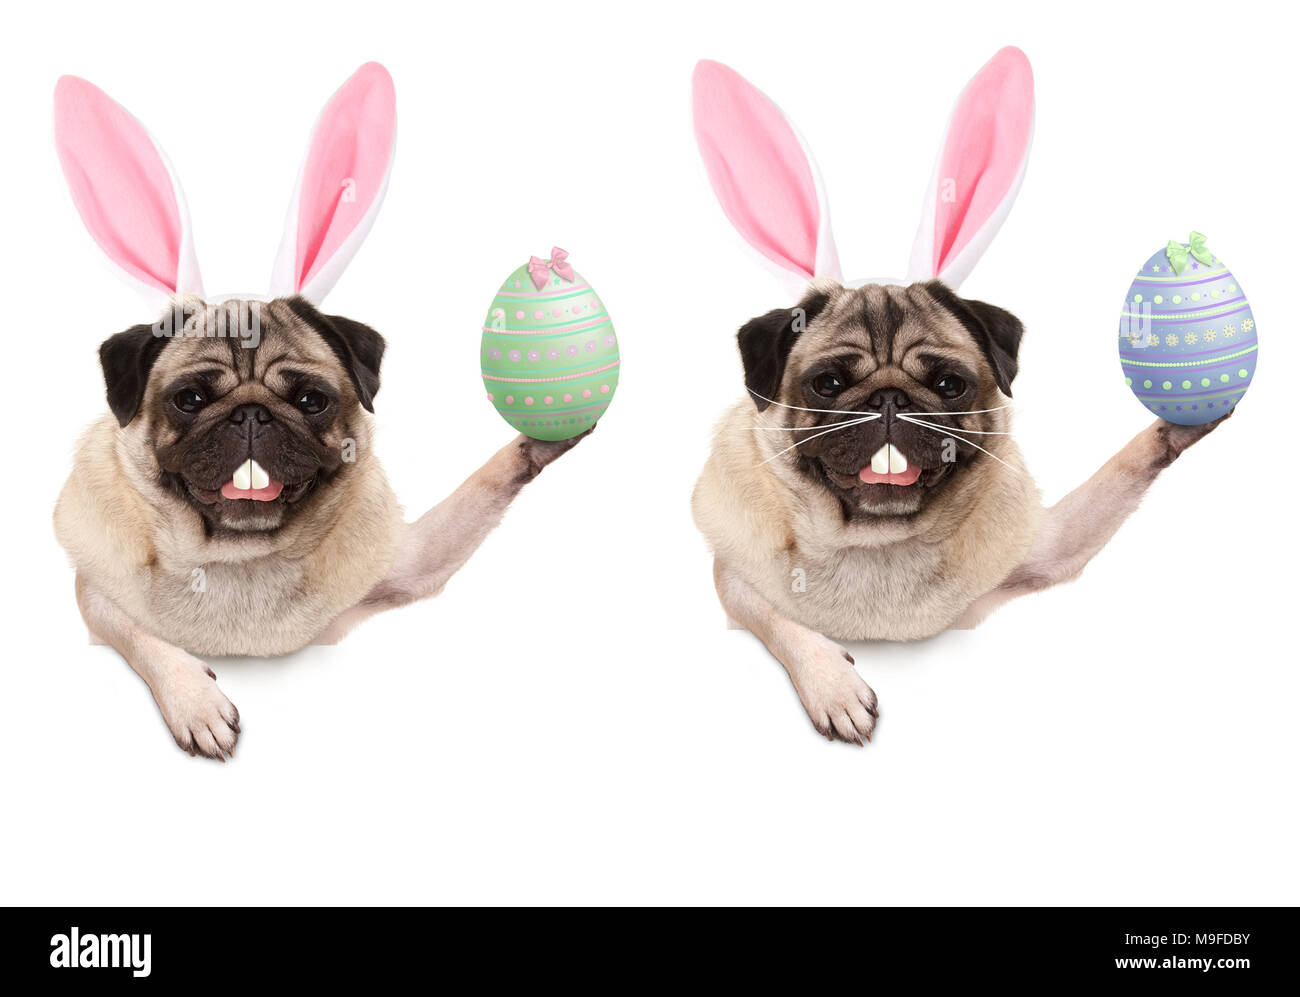 cute pug puppy dog with bunny ears diadem, holding up easter egg hanging with paws on blank banner, isolated on white background - Stock Image